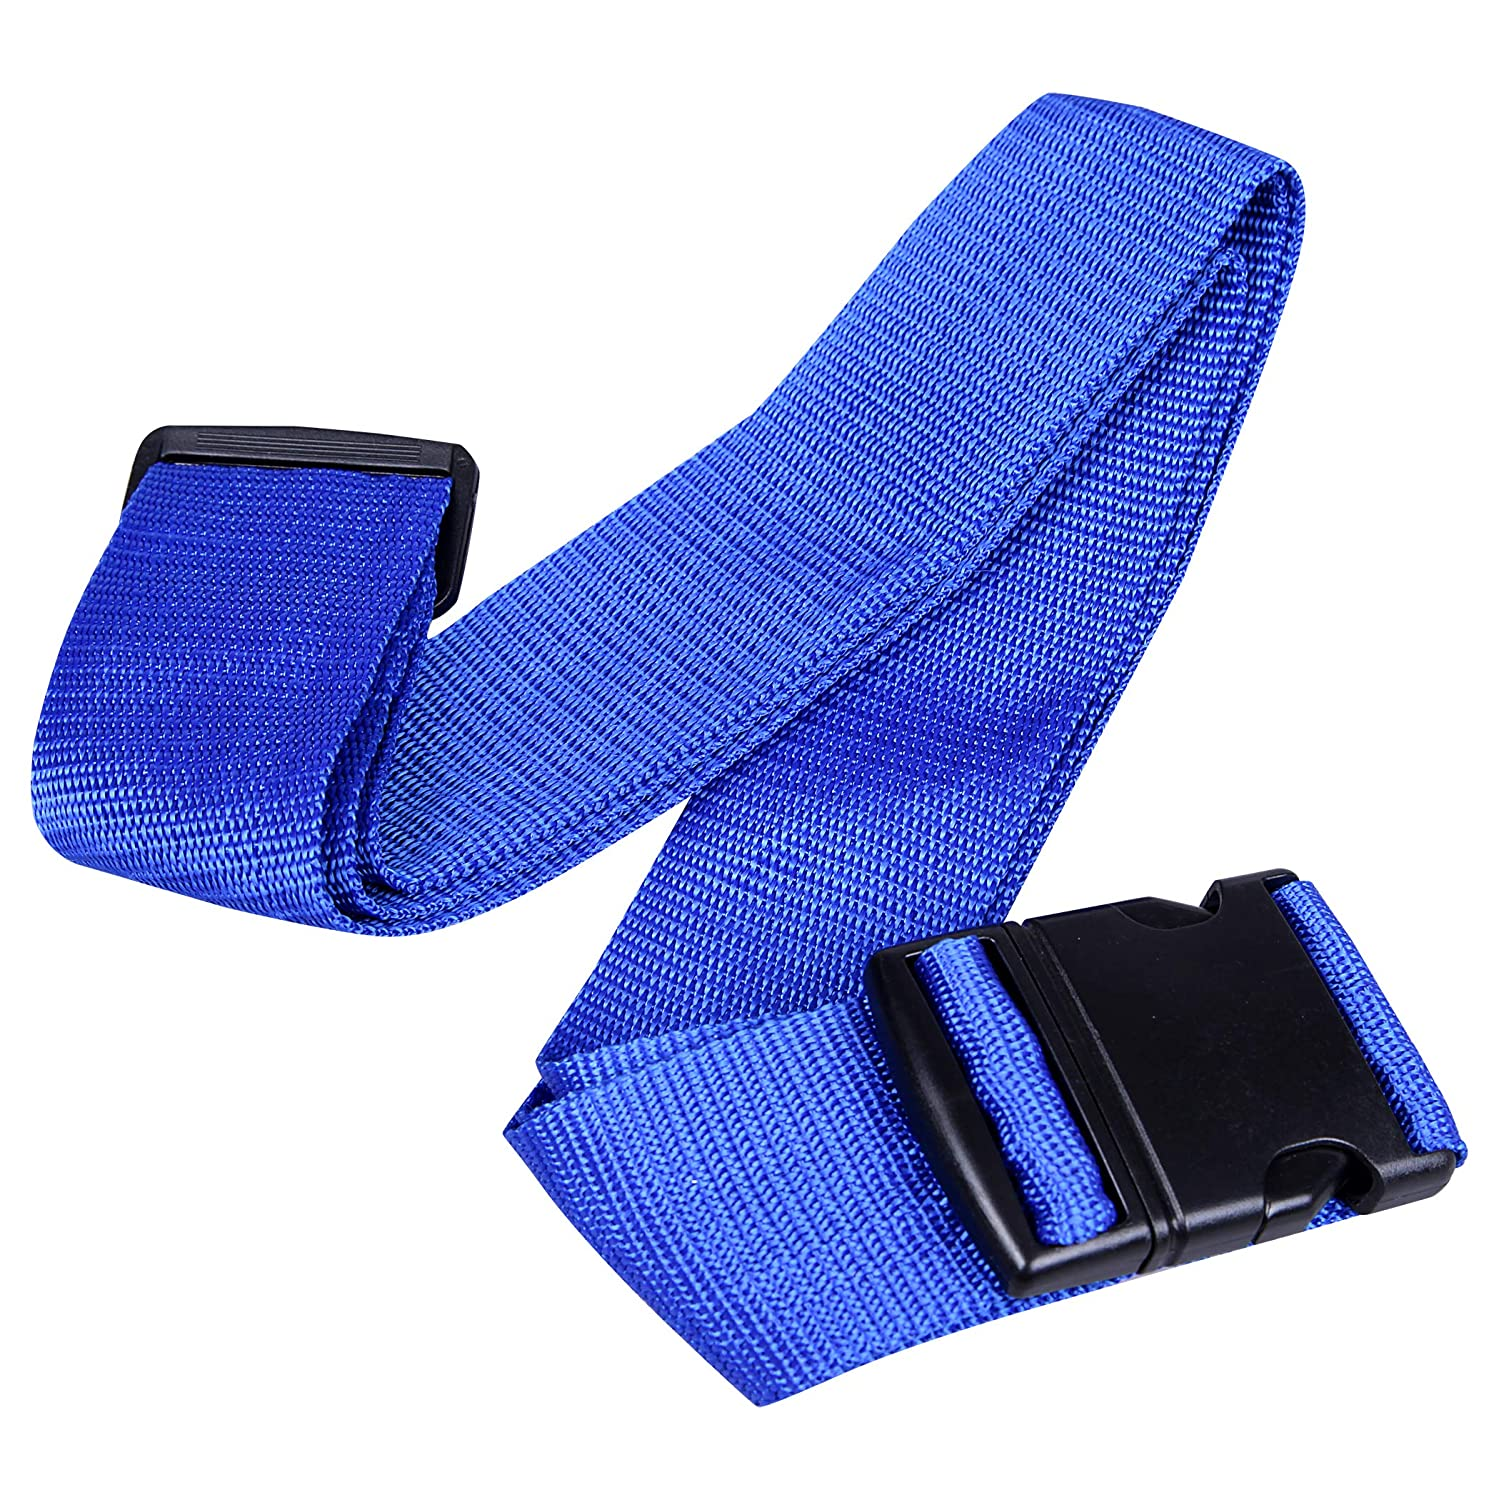 Cartman Luggage Straps Suitcase Belts Travel Bag Accessories 2Pack 200cm 78inch Blue